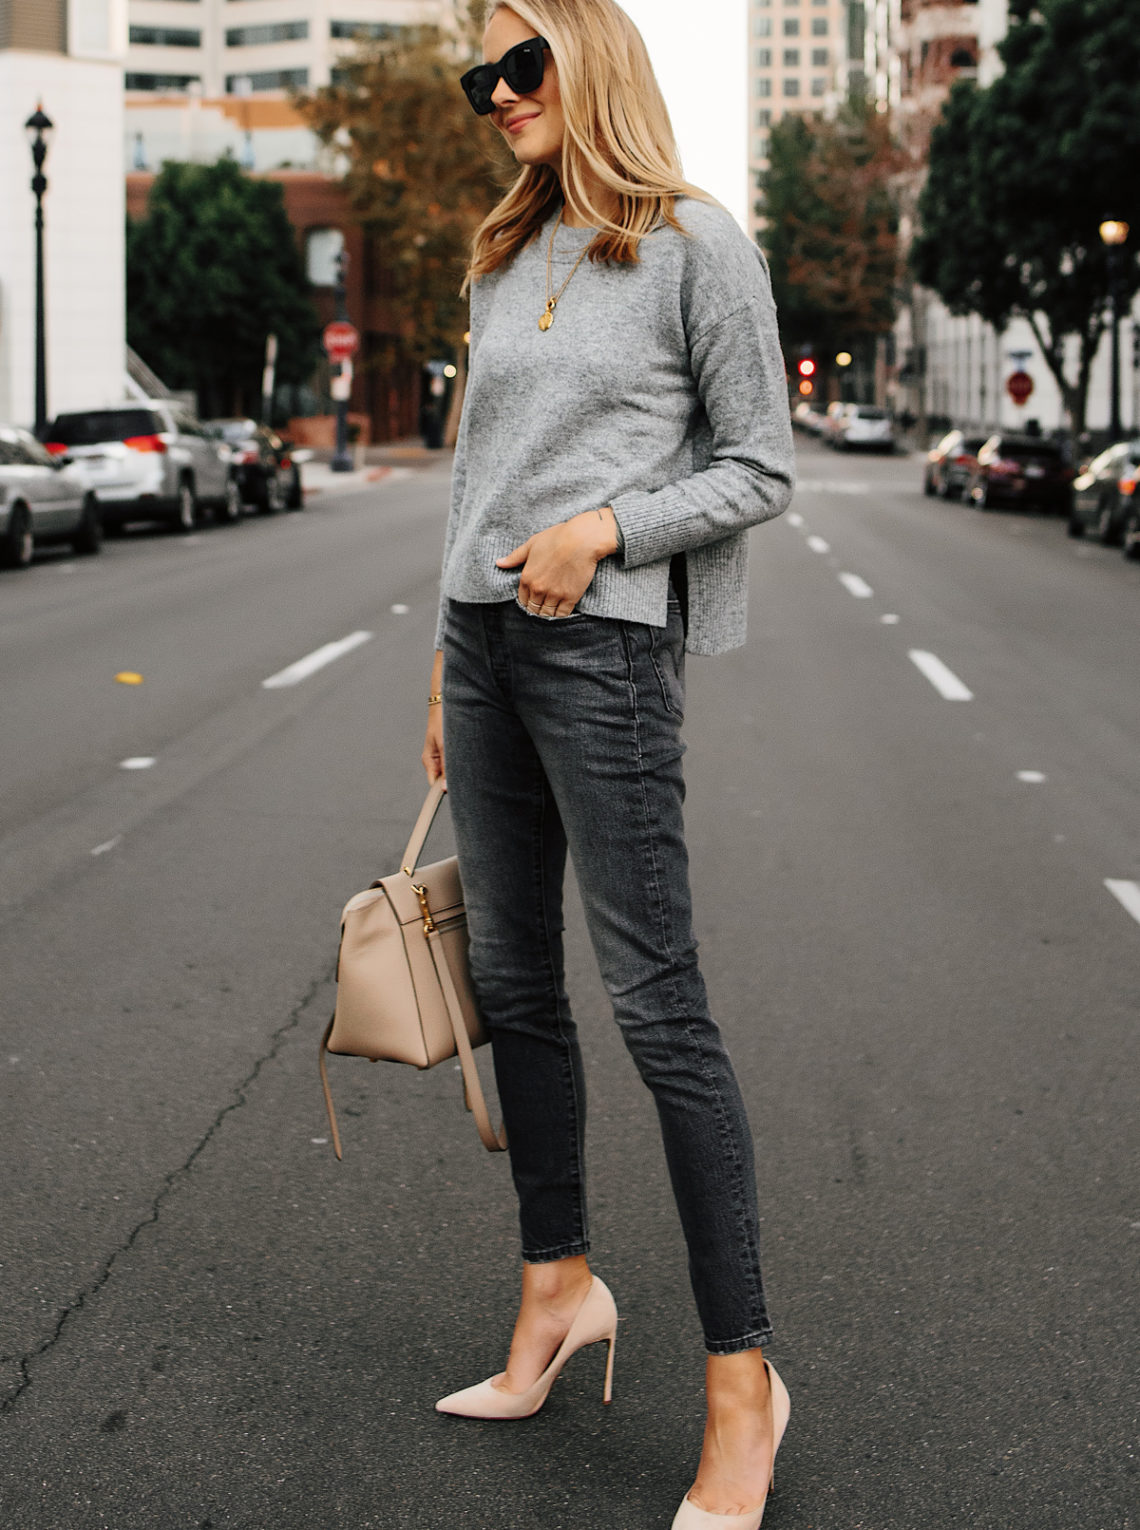 Blonde Woman Wearing Oversized Grey Sweater Levis 501 Grey High Waist Skinny Jeans Nude Pumps Fashion Jackson San Diego Fashion Blogger Street Style